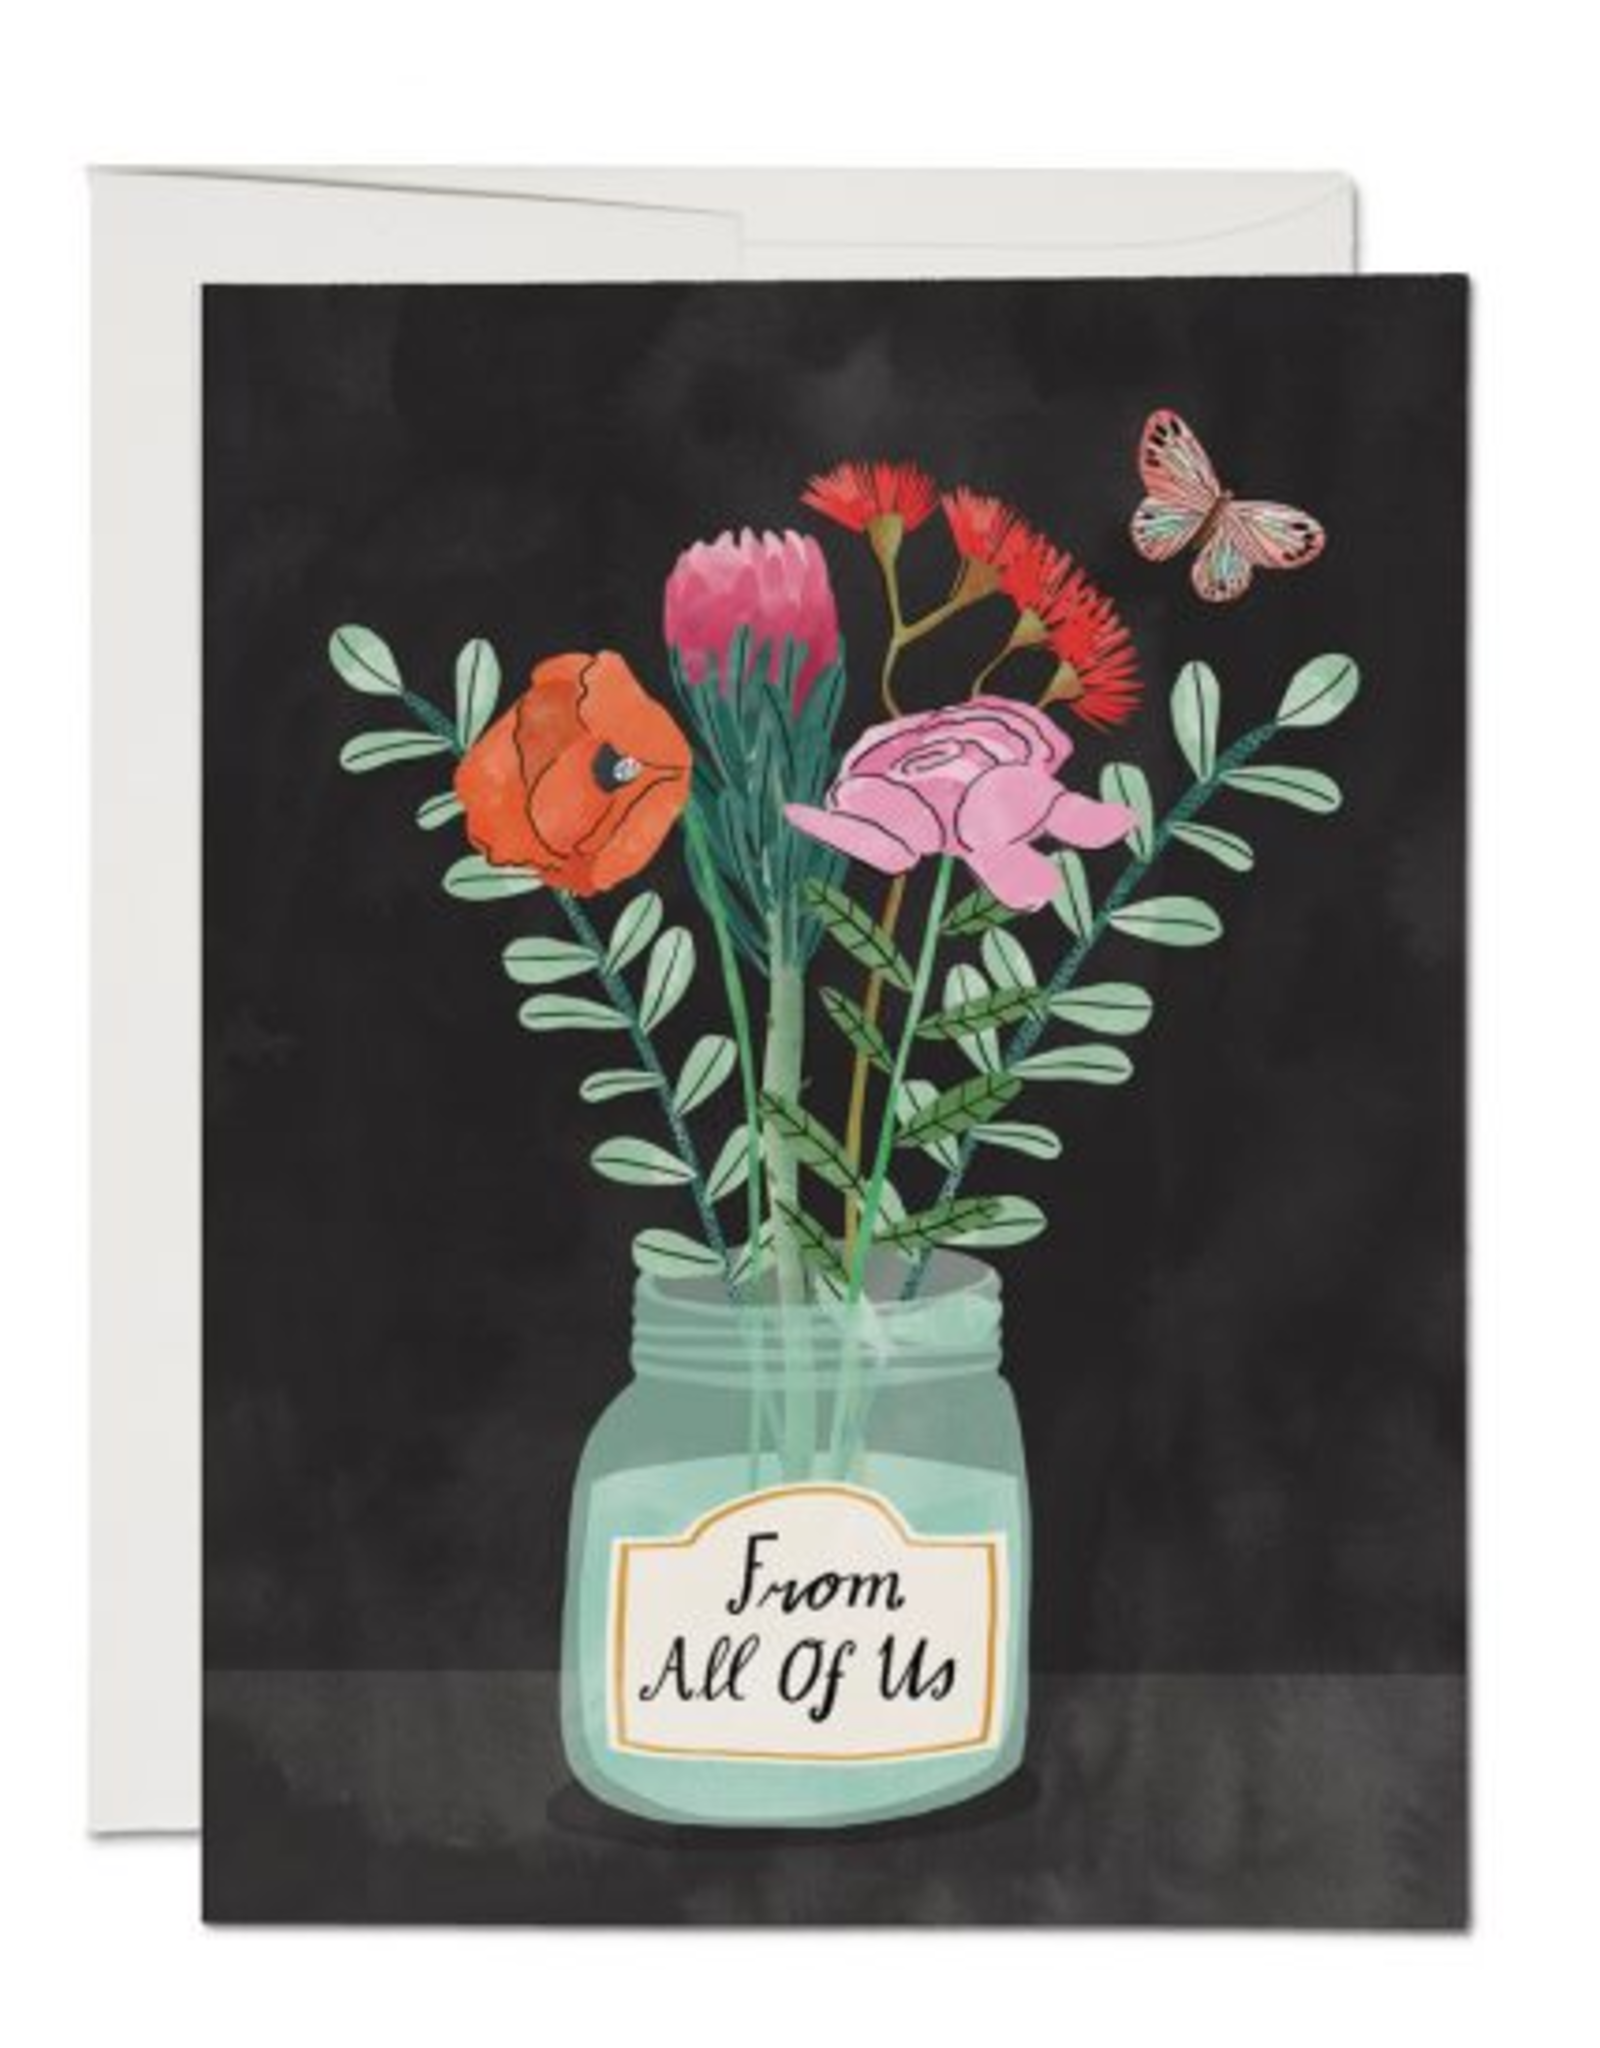 Flowers From All of Us Greeting Card